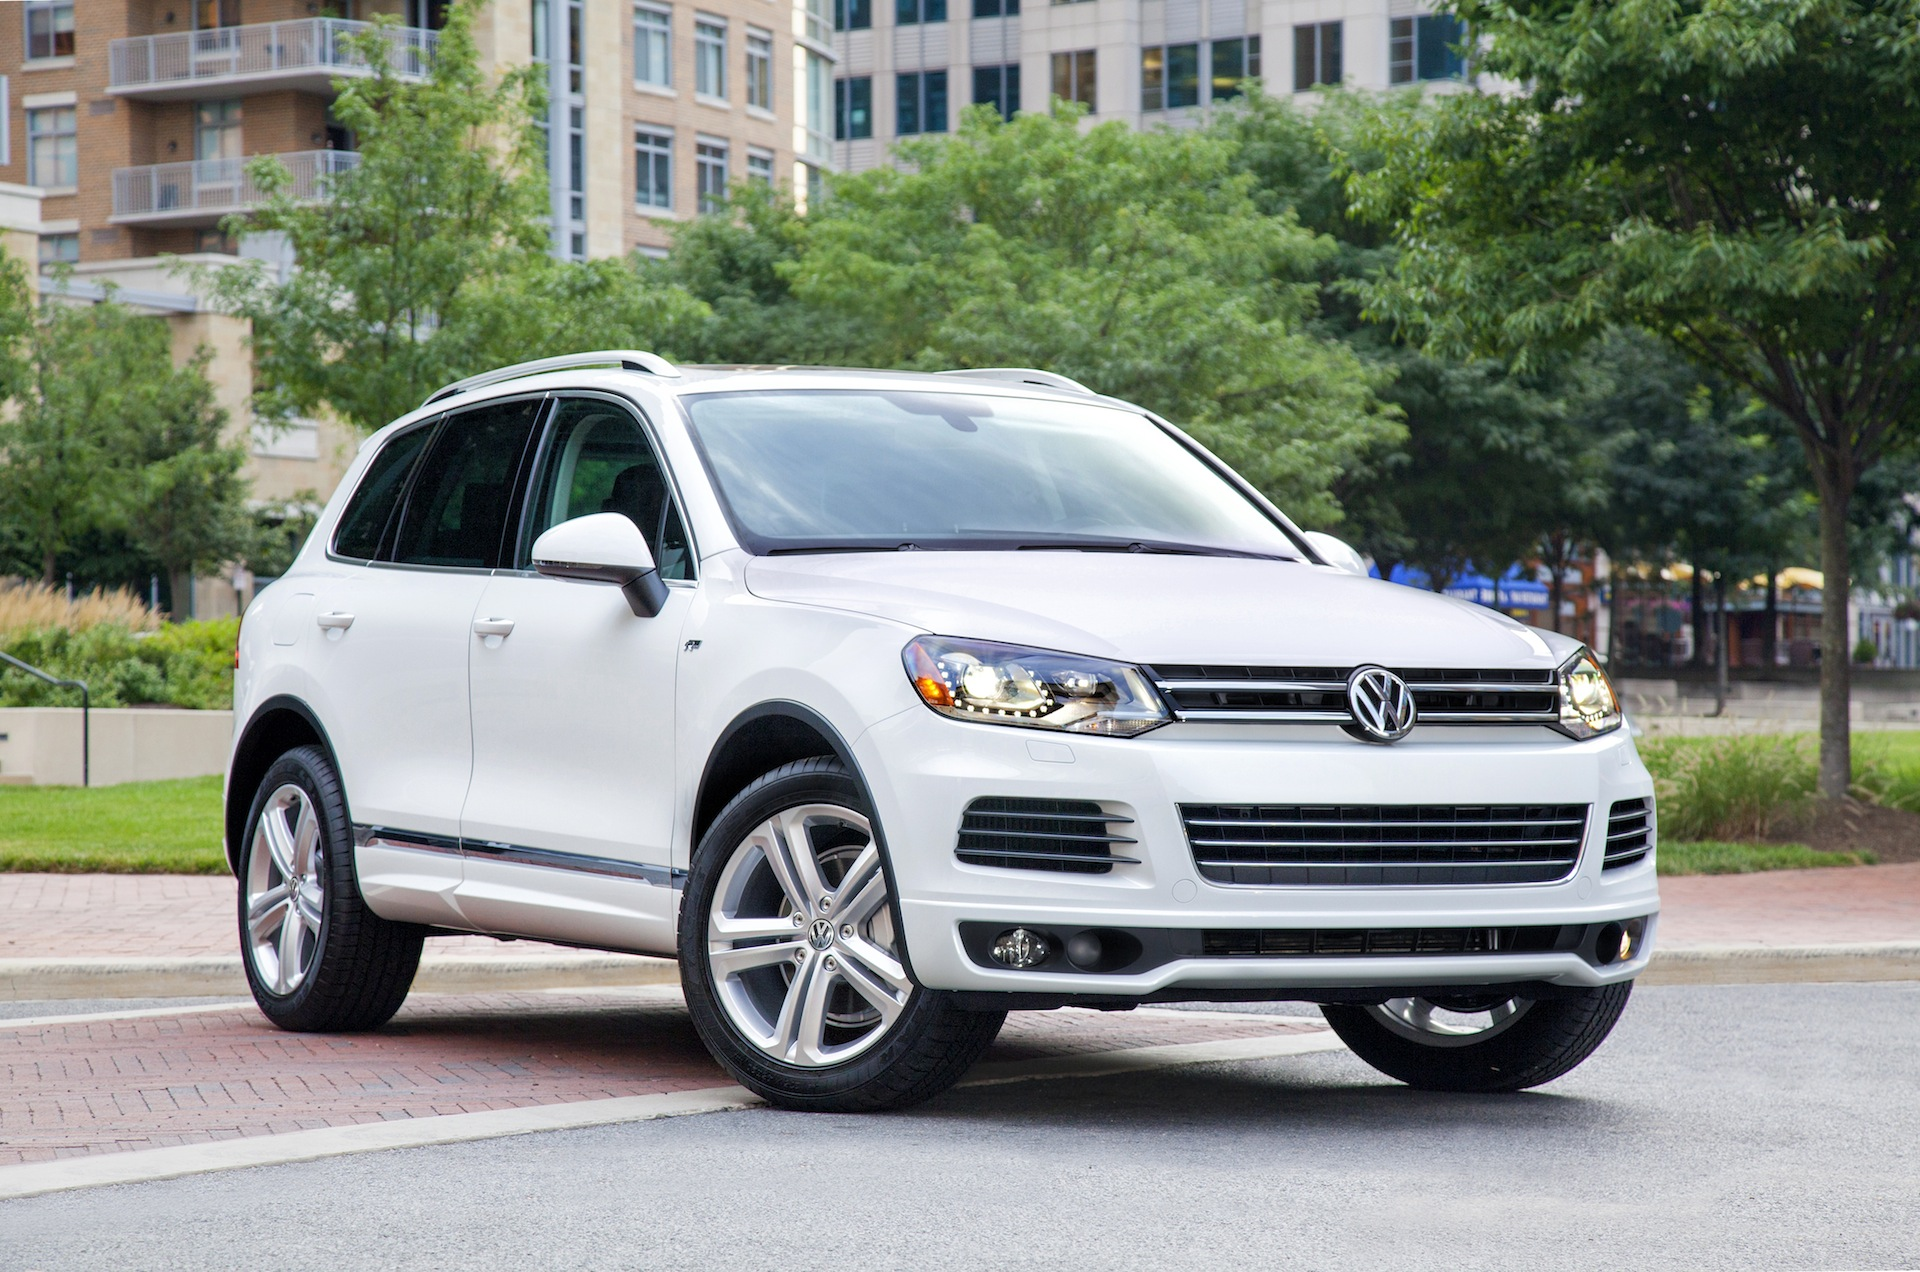 2014 volkswagen touareg vw performance review the car connection. Black Bedroom Furniture Sets. Home Design Ideas